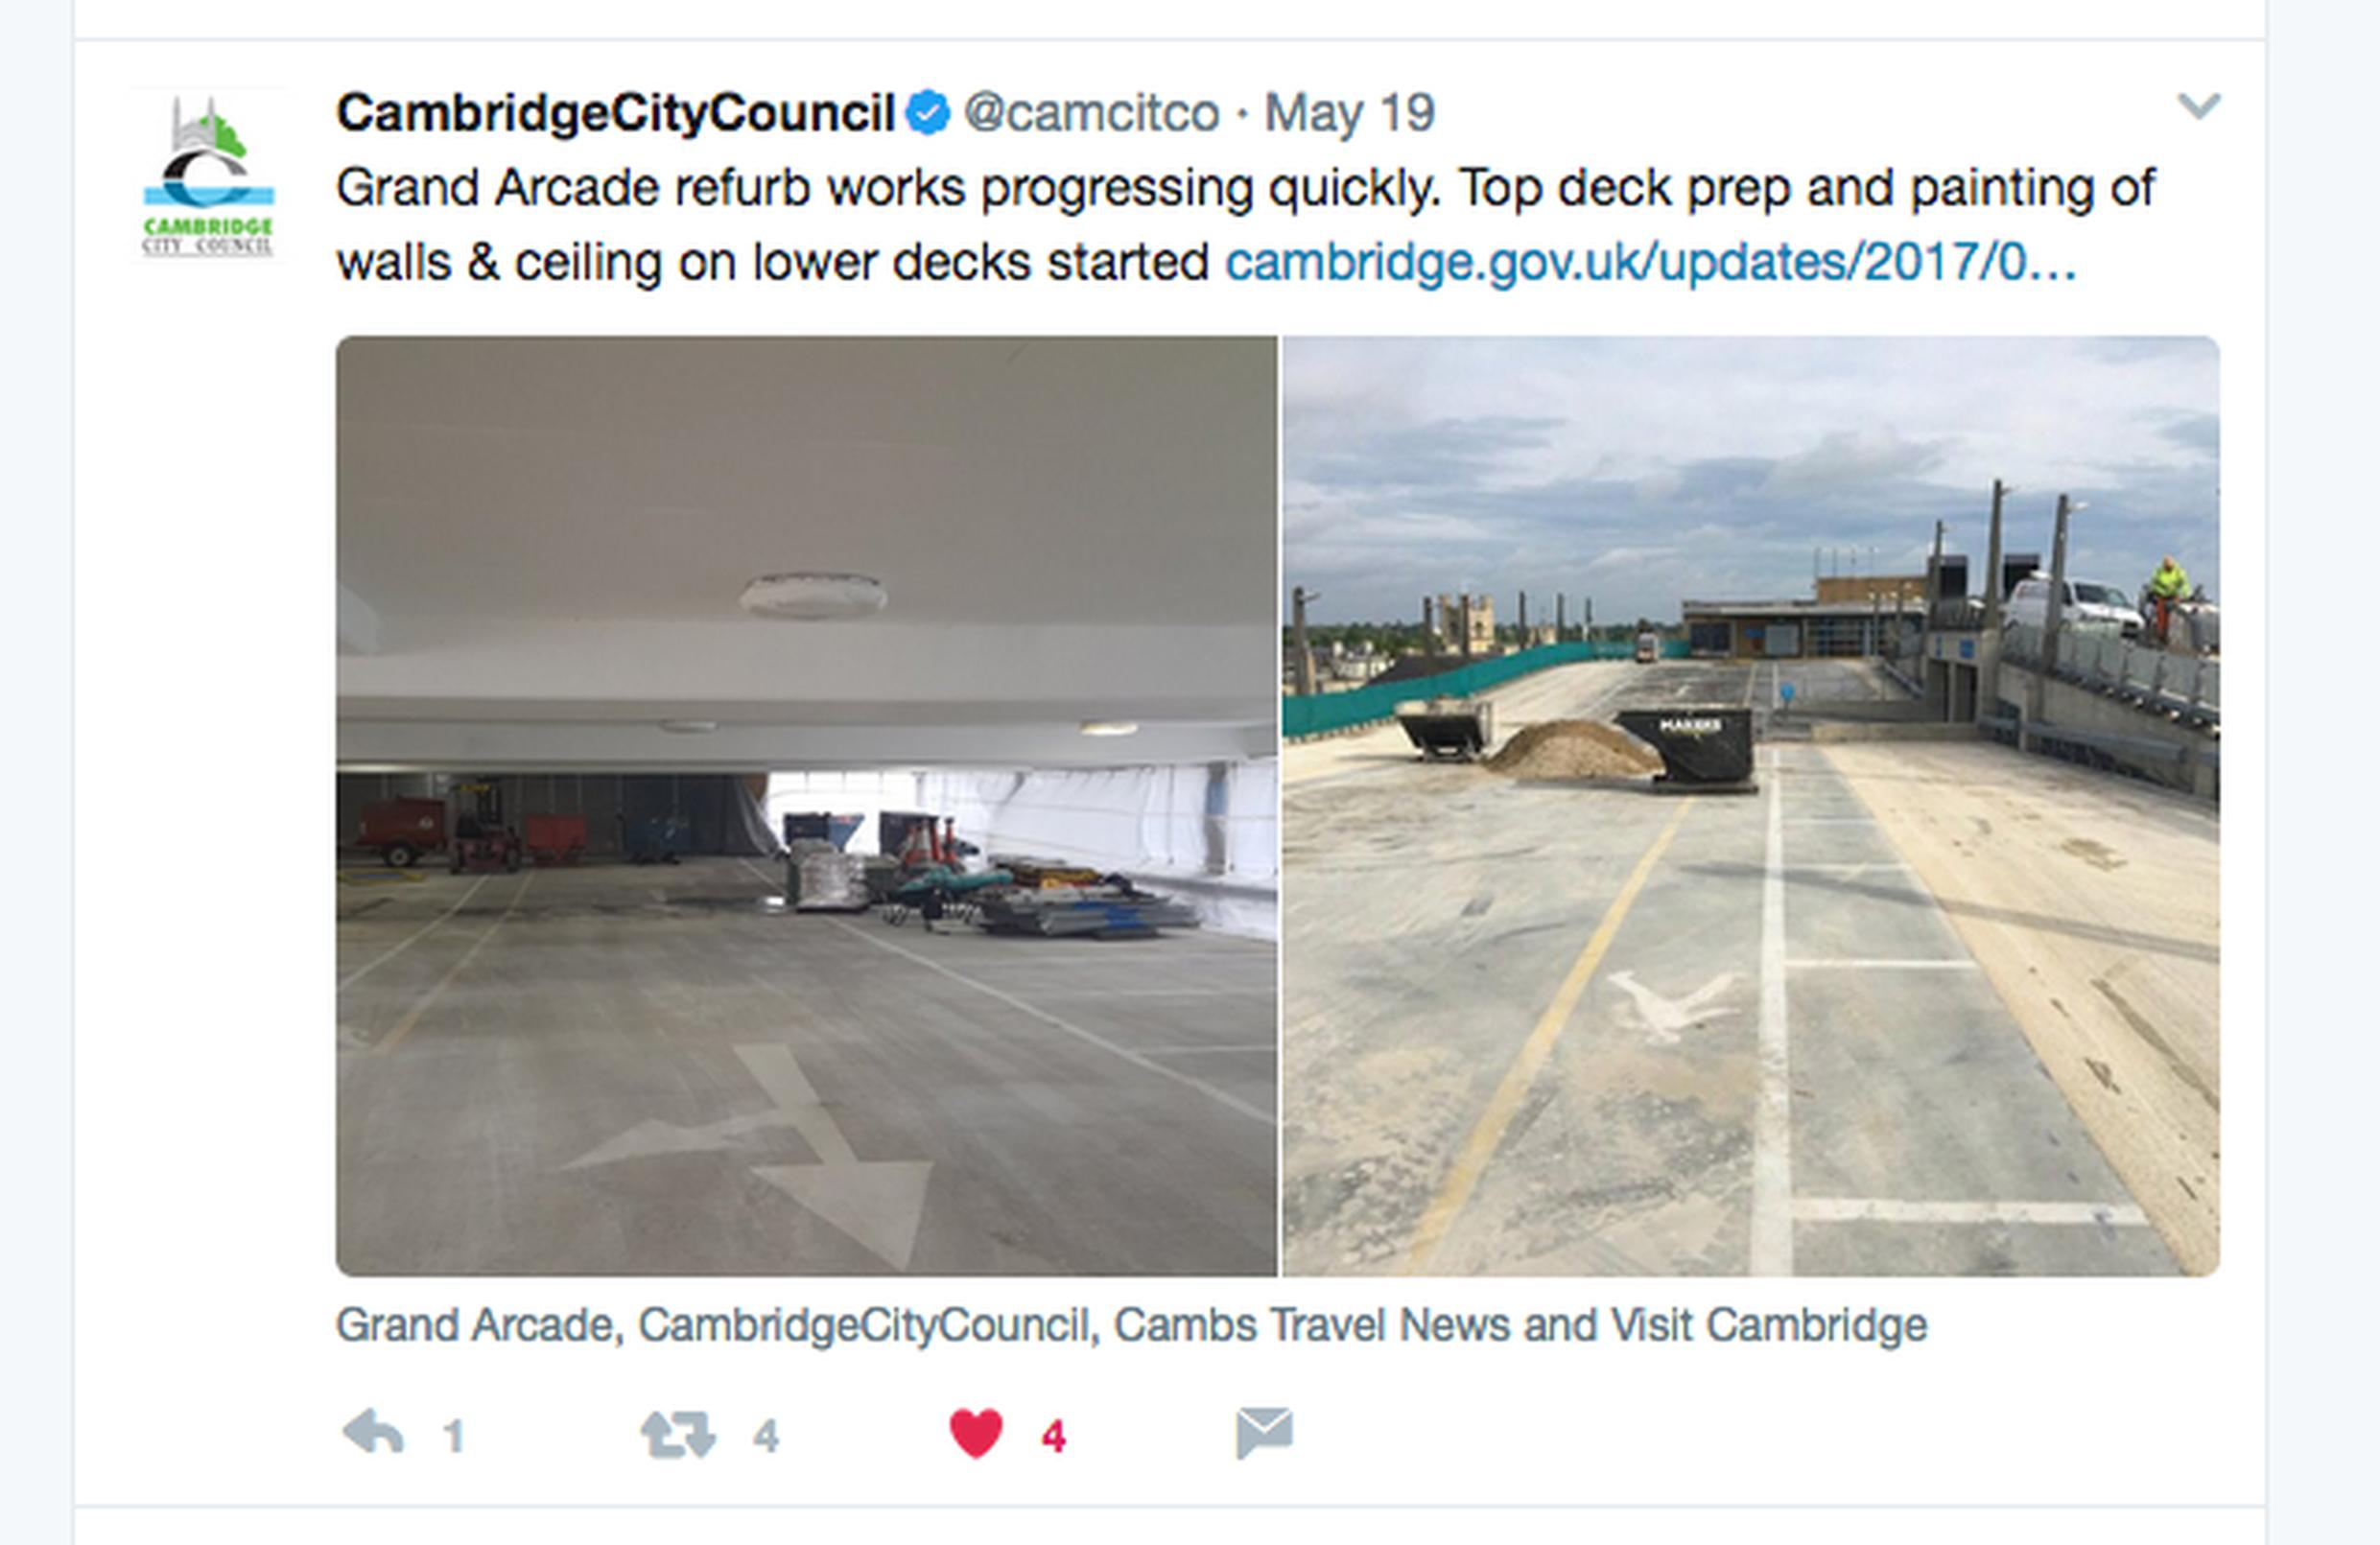 Cambridge City Council is using social media to keep residents, businesses and visitors up-to-date on progress on the car park improvement works